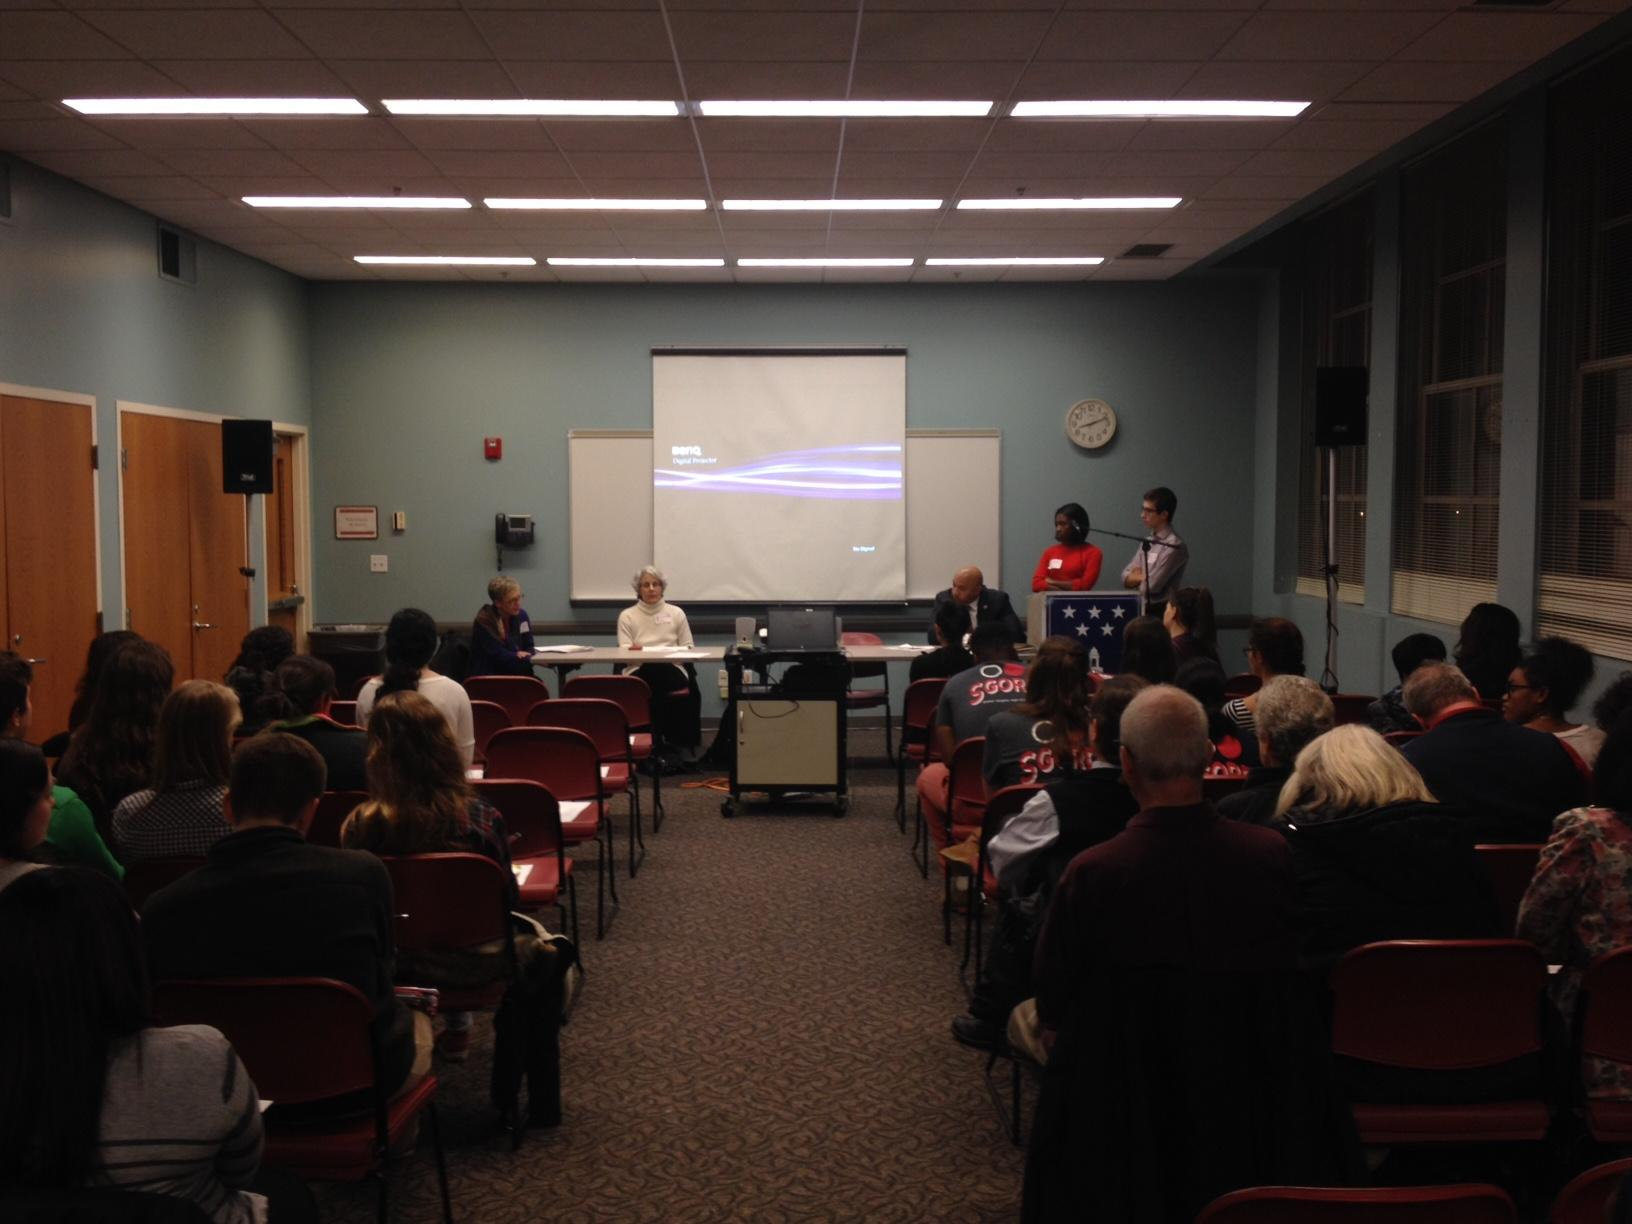 SGORR member Jonah Ricanati reads a question to the panel members on Dec. 3 at the Shaker Heights Main Library.